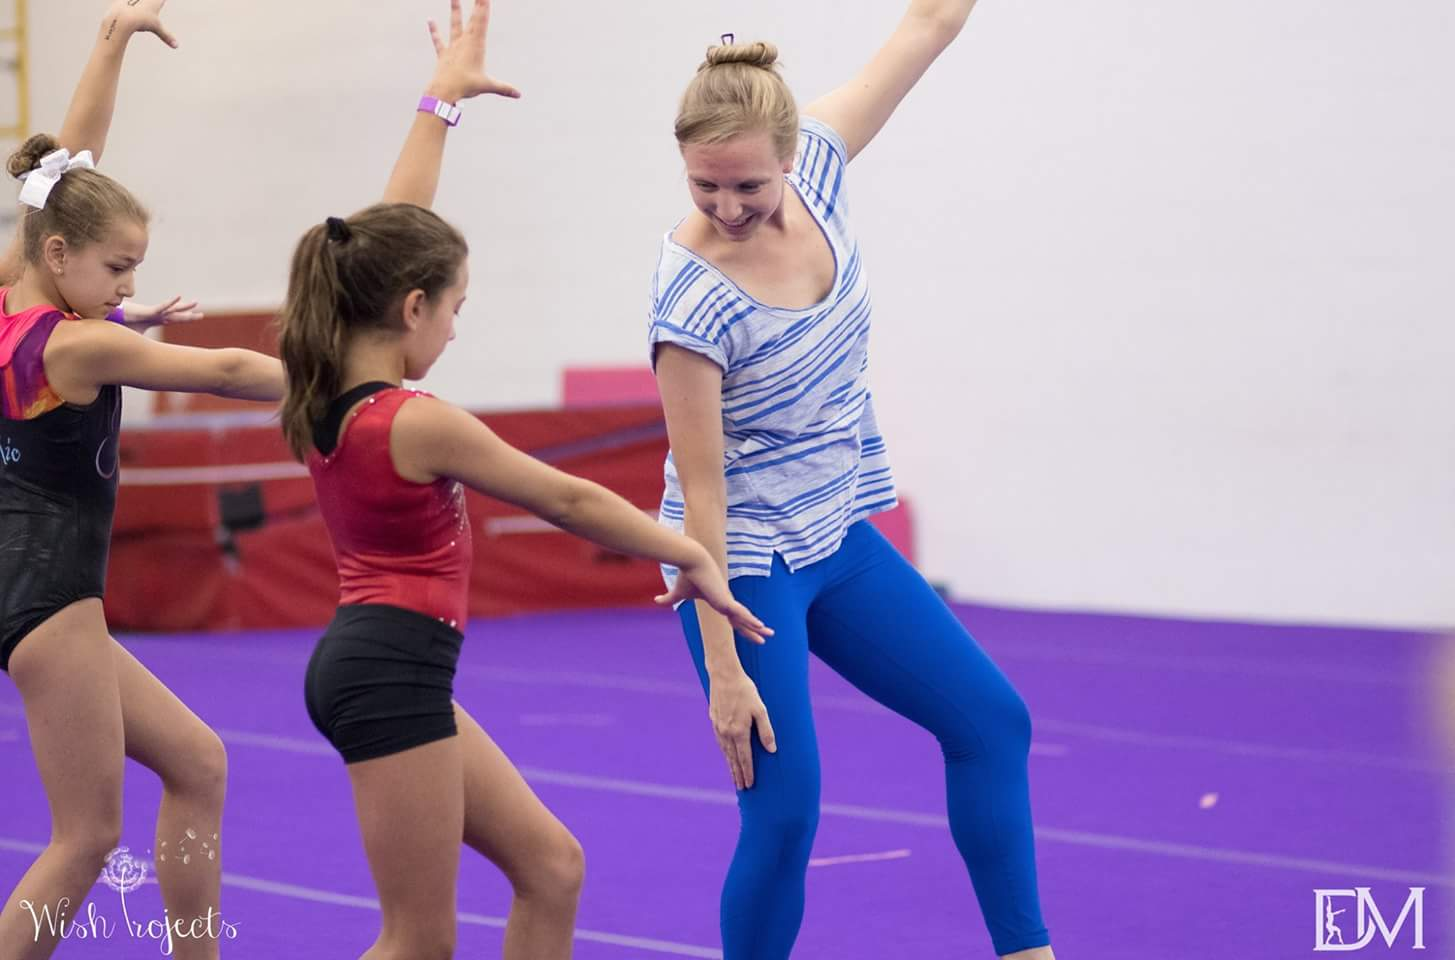 Coaching gymnasts